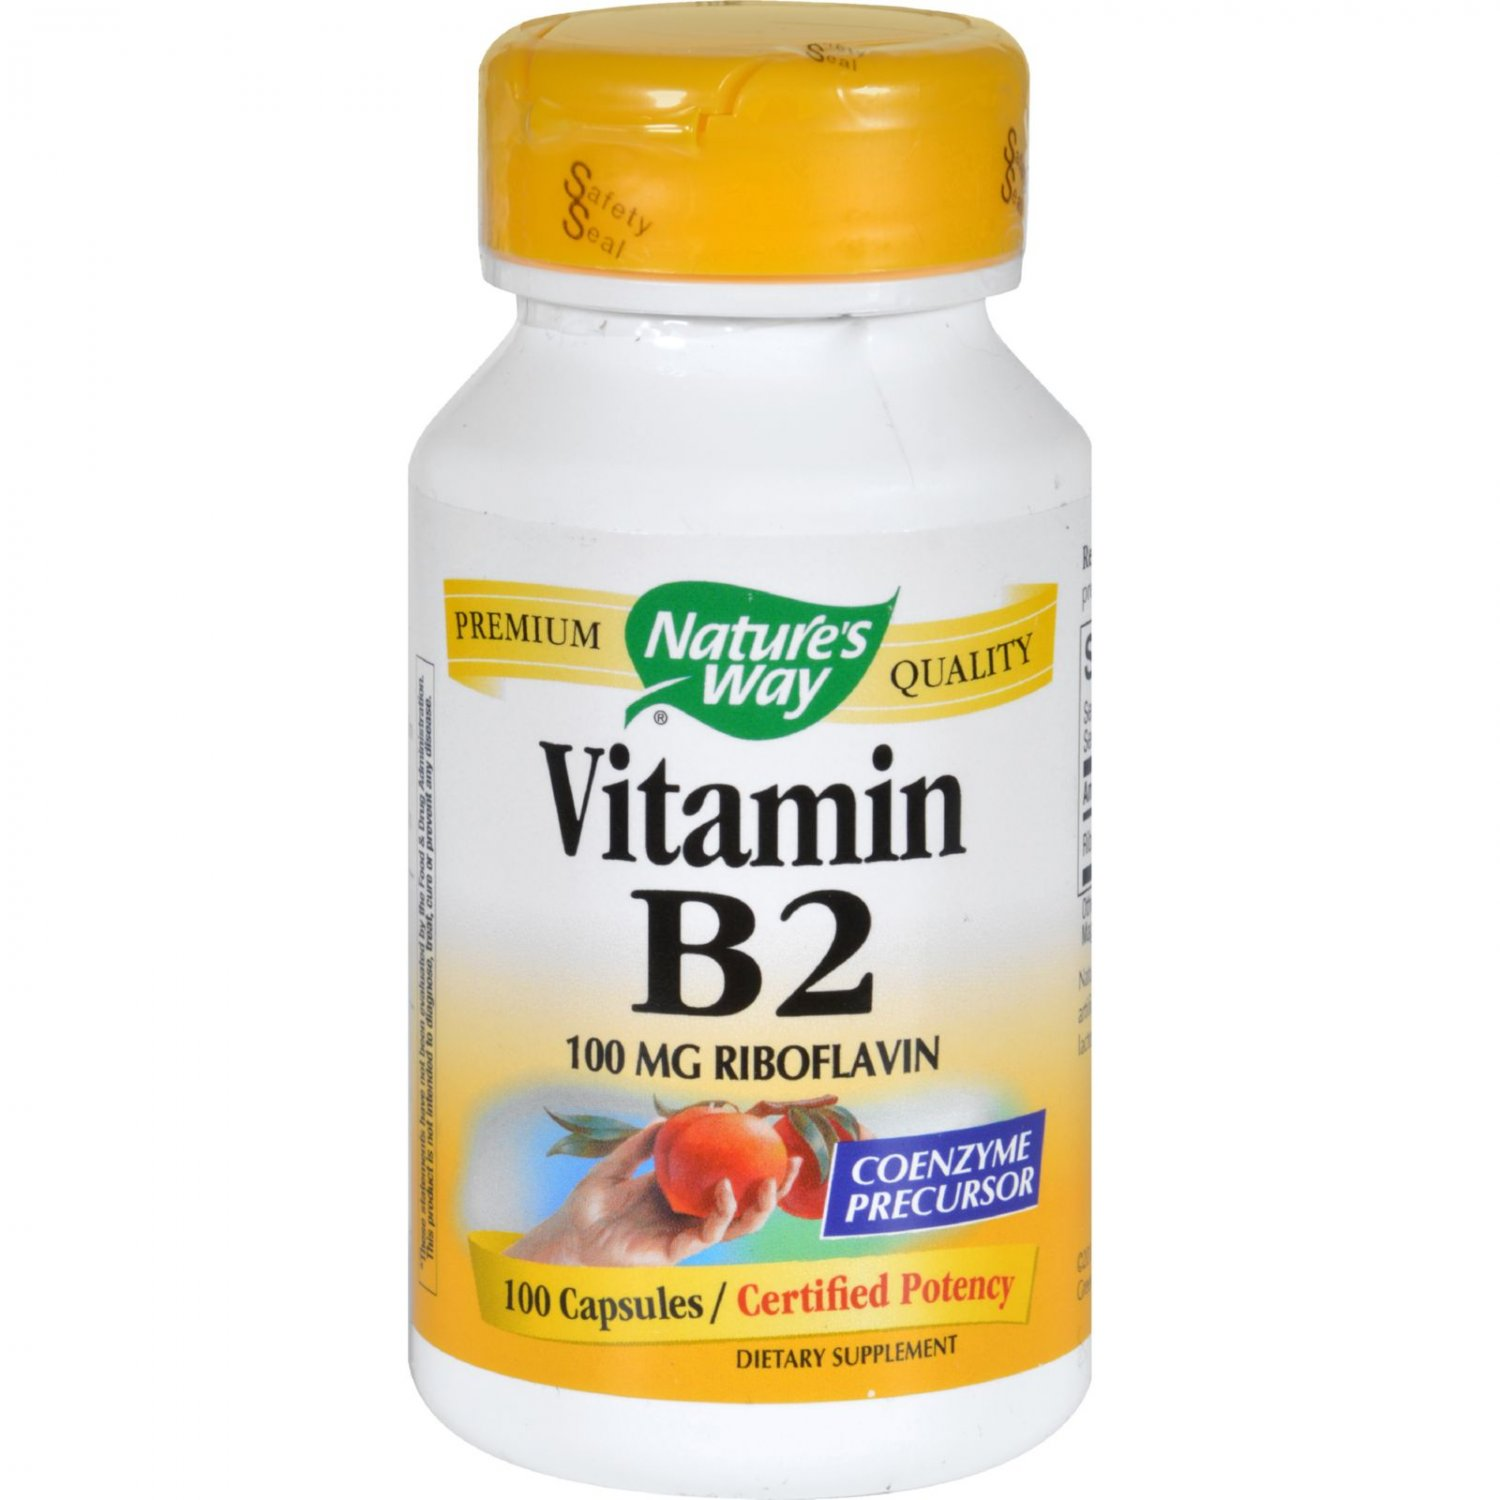 Nature's Way Vitamin B-2 - 100 mg - 100 Capsules